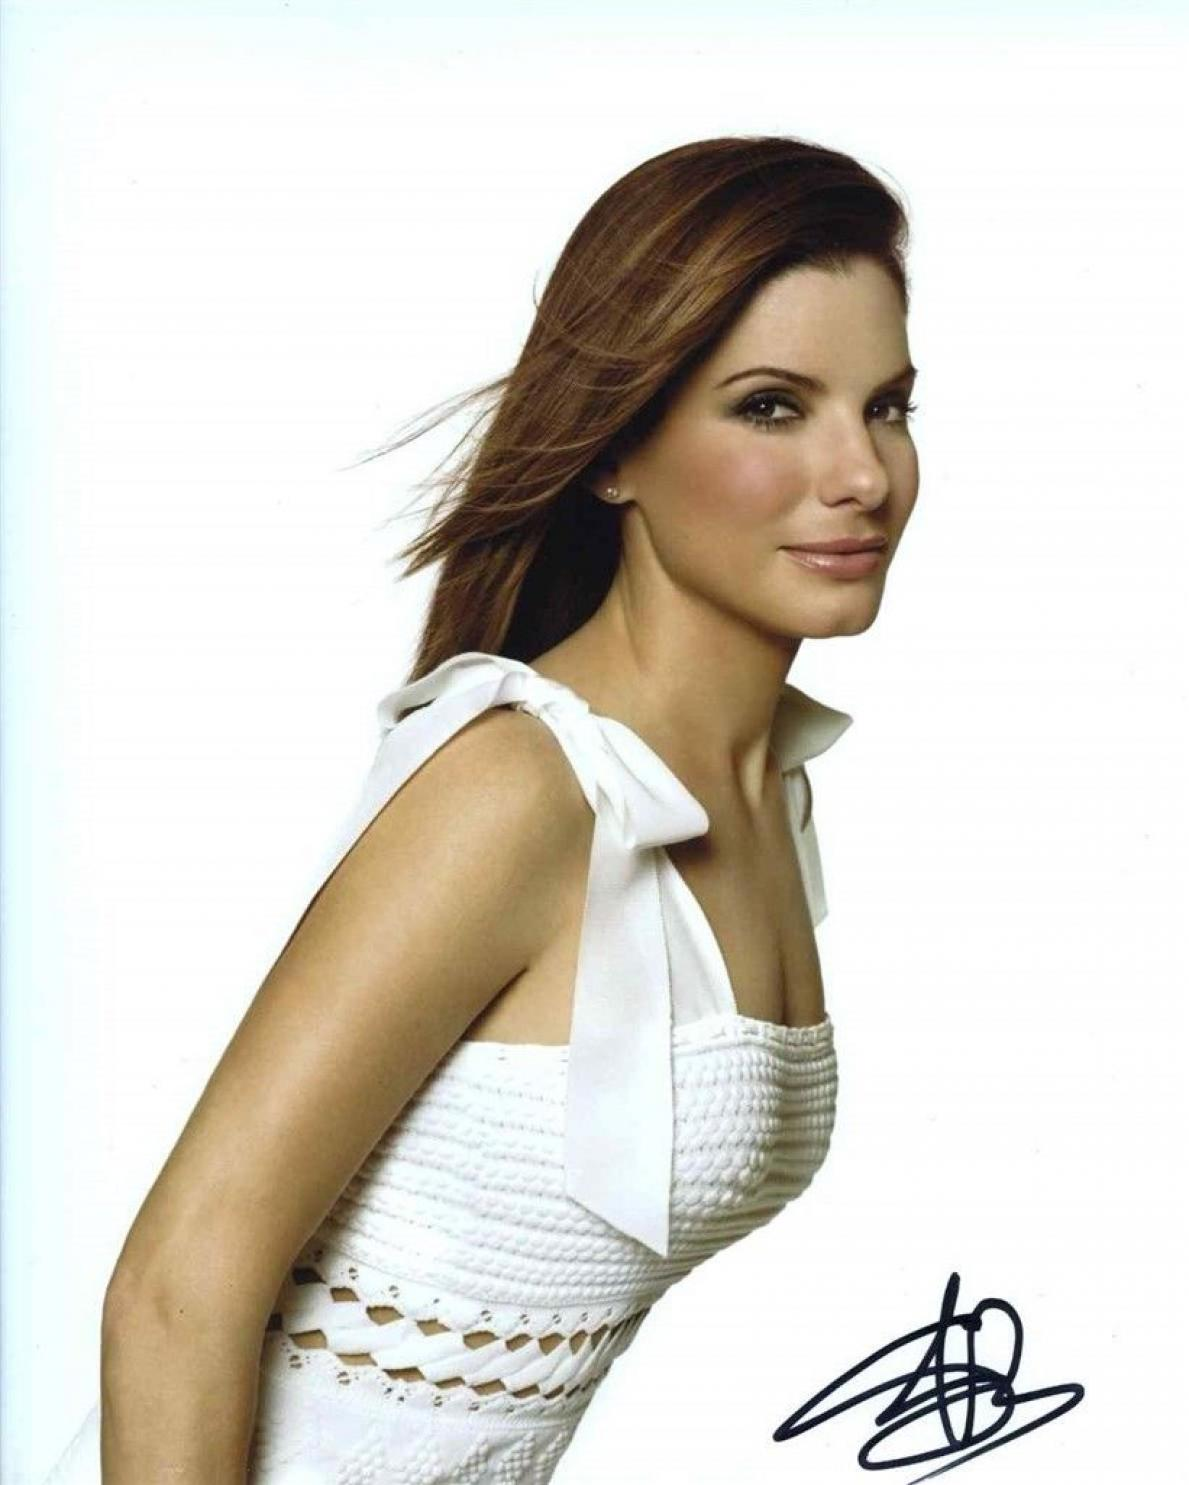 Sandra Bullock Great Autographed Signed 8x10 Photo Certified Authentic PSA/DNA